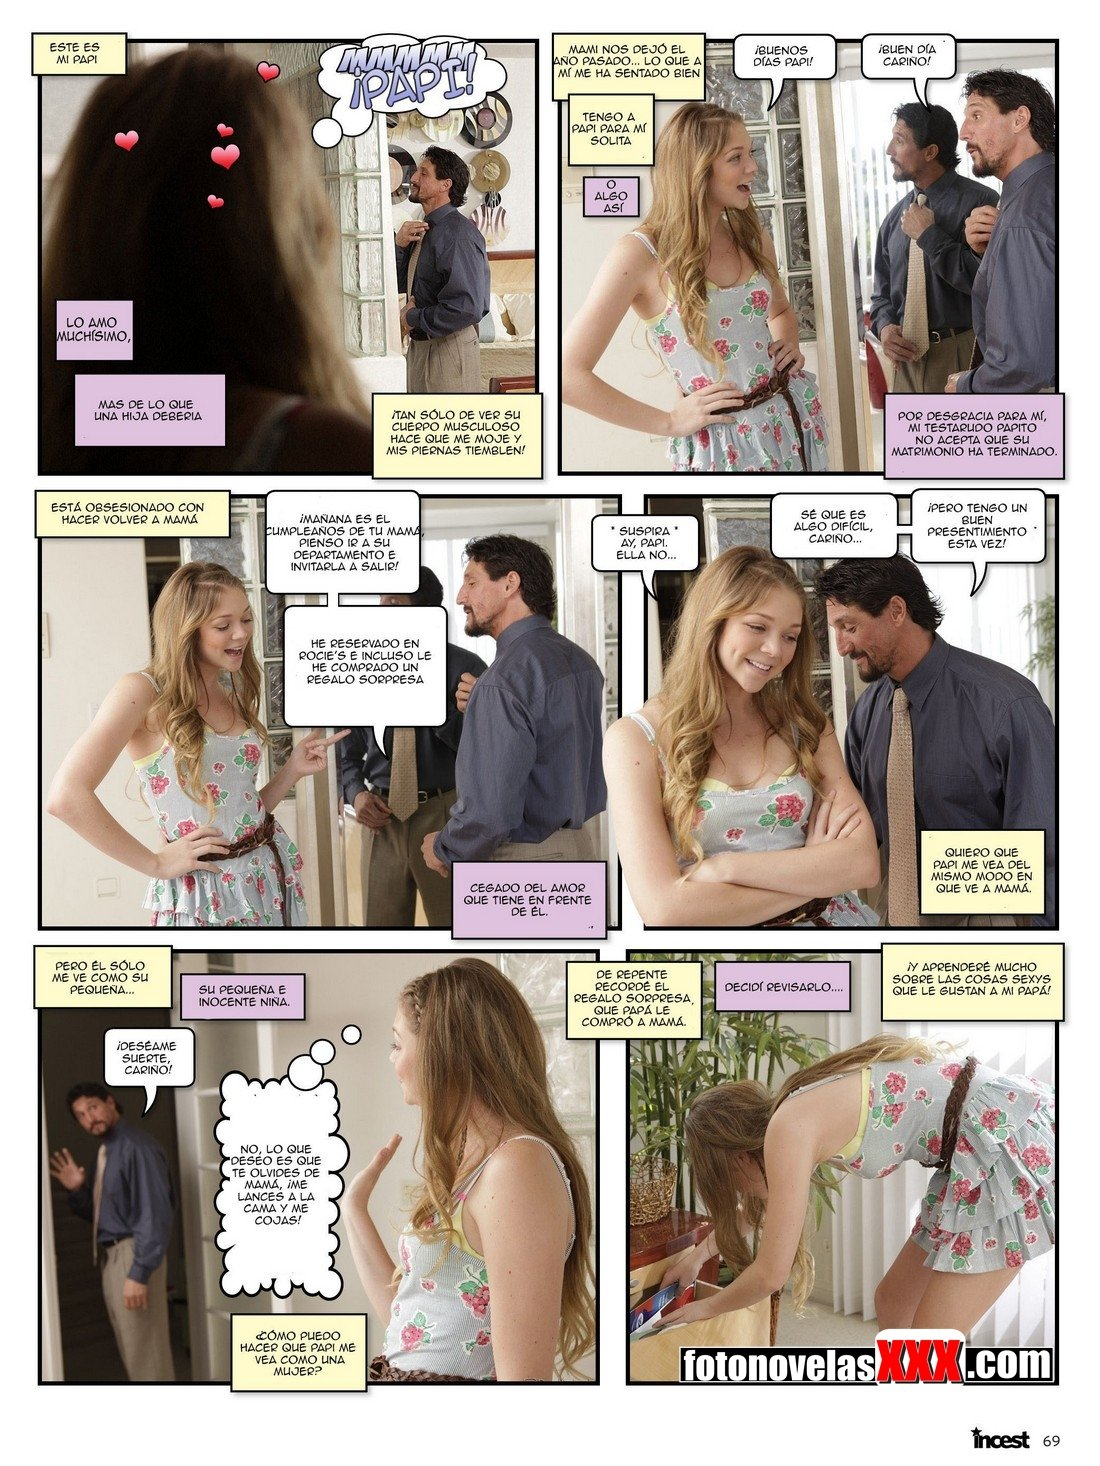 incest candy 7 fotonovela pag2